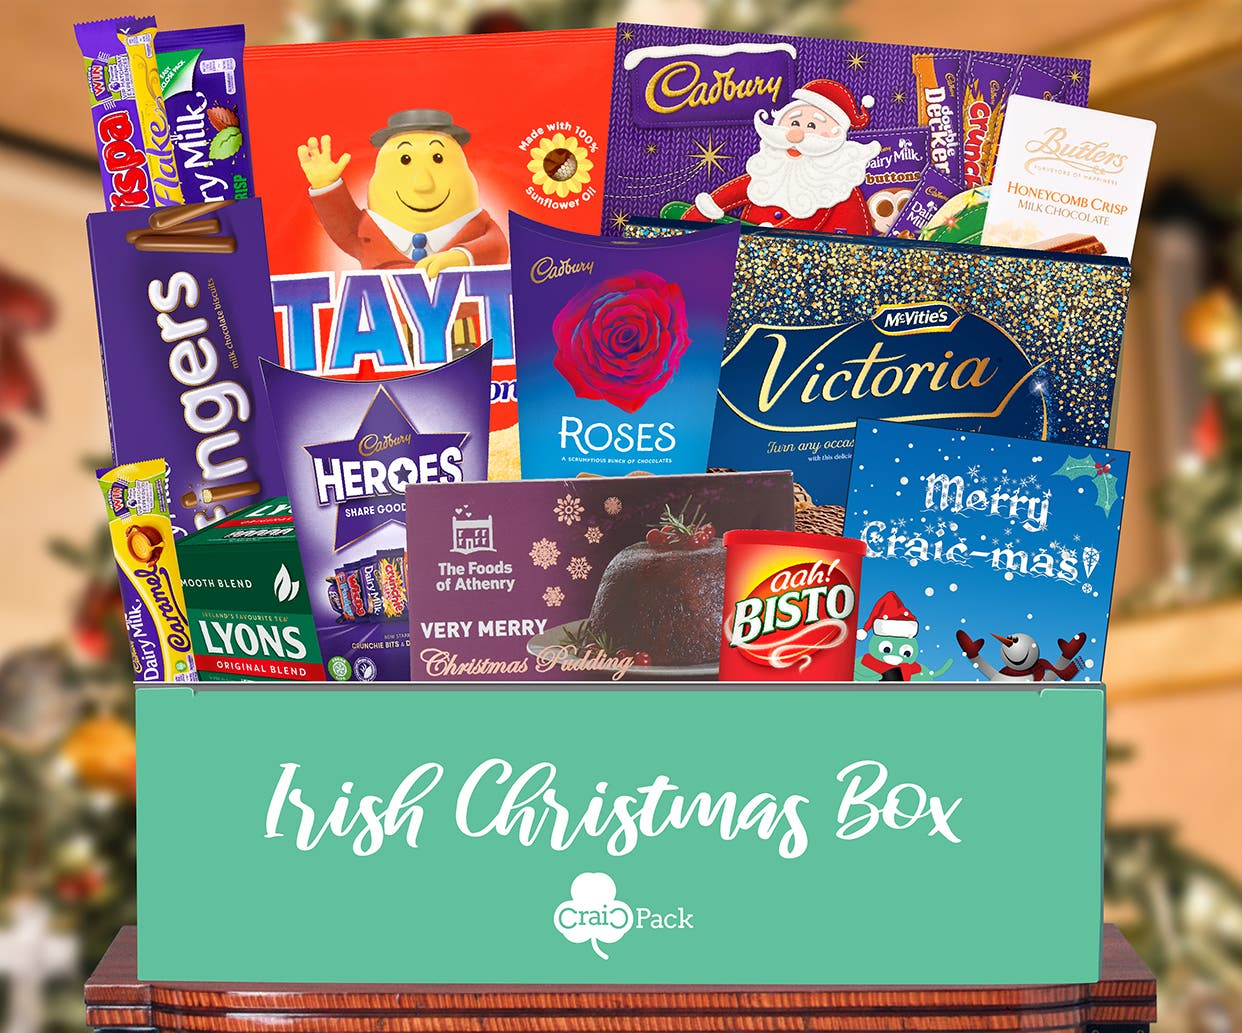 Craicpack Irish Christmas Box